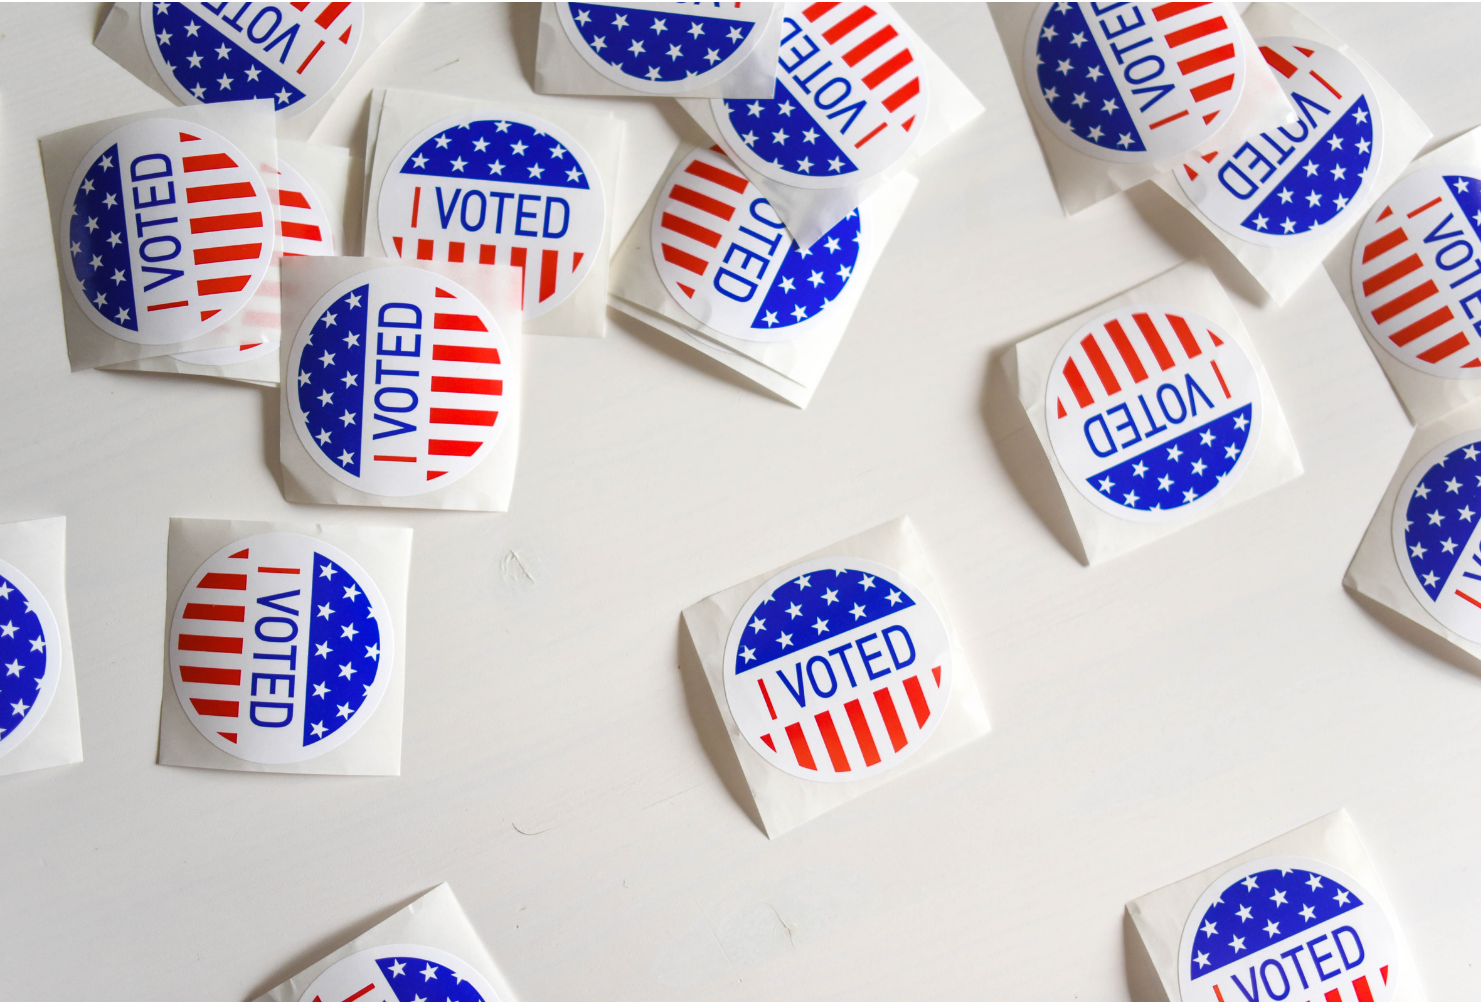 Voting stickers scattered on a white background